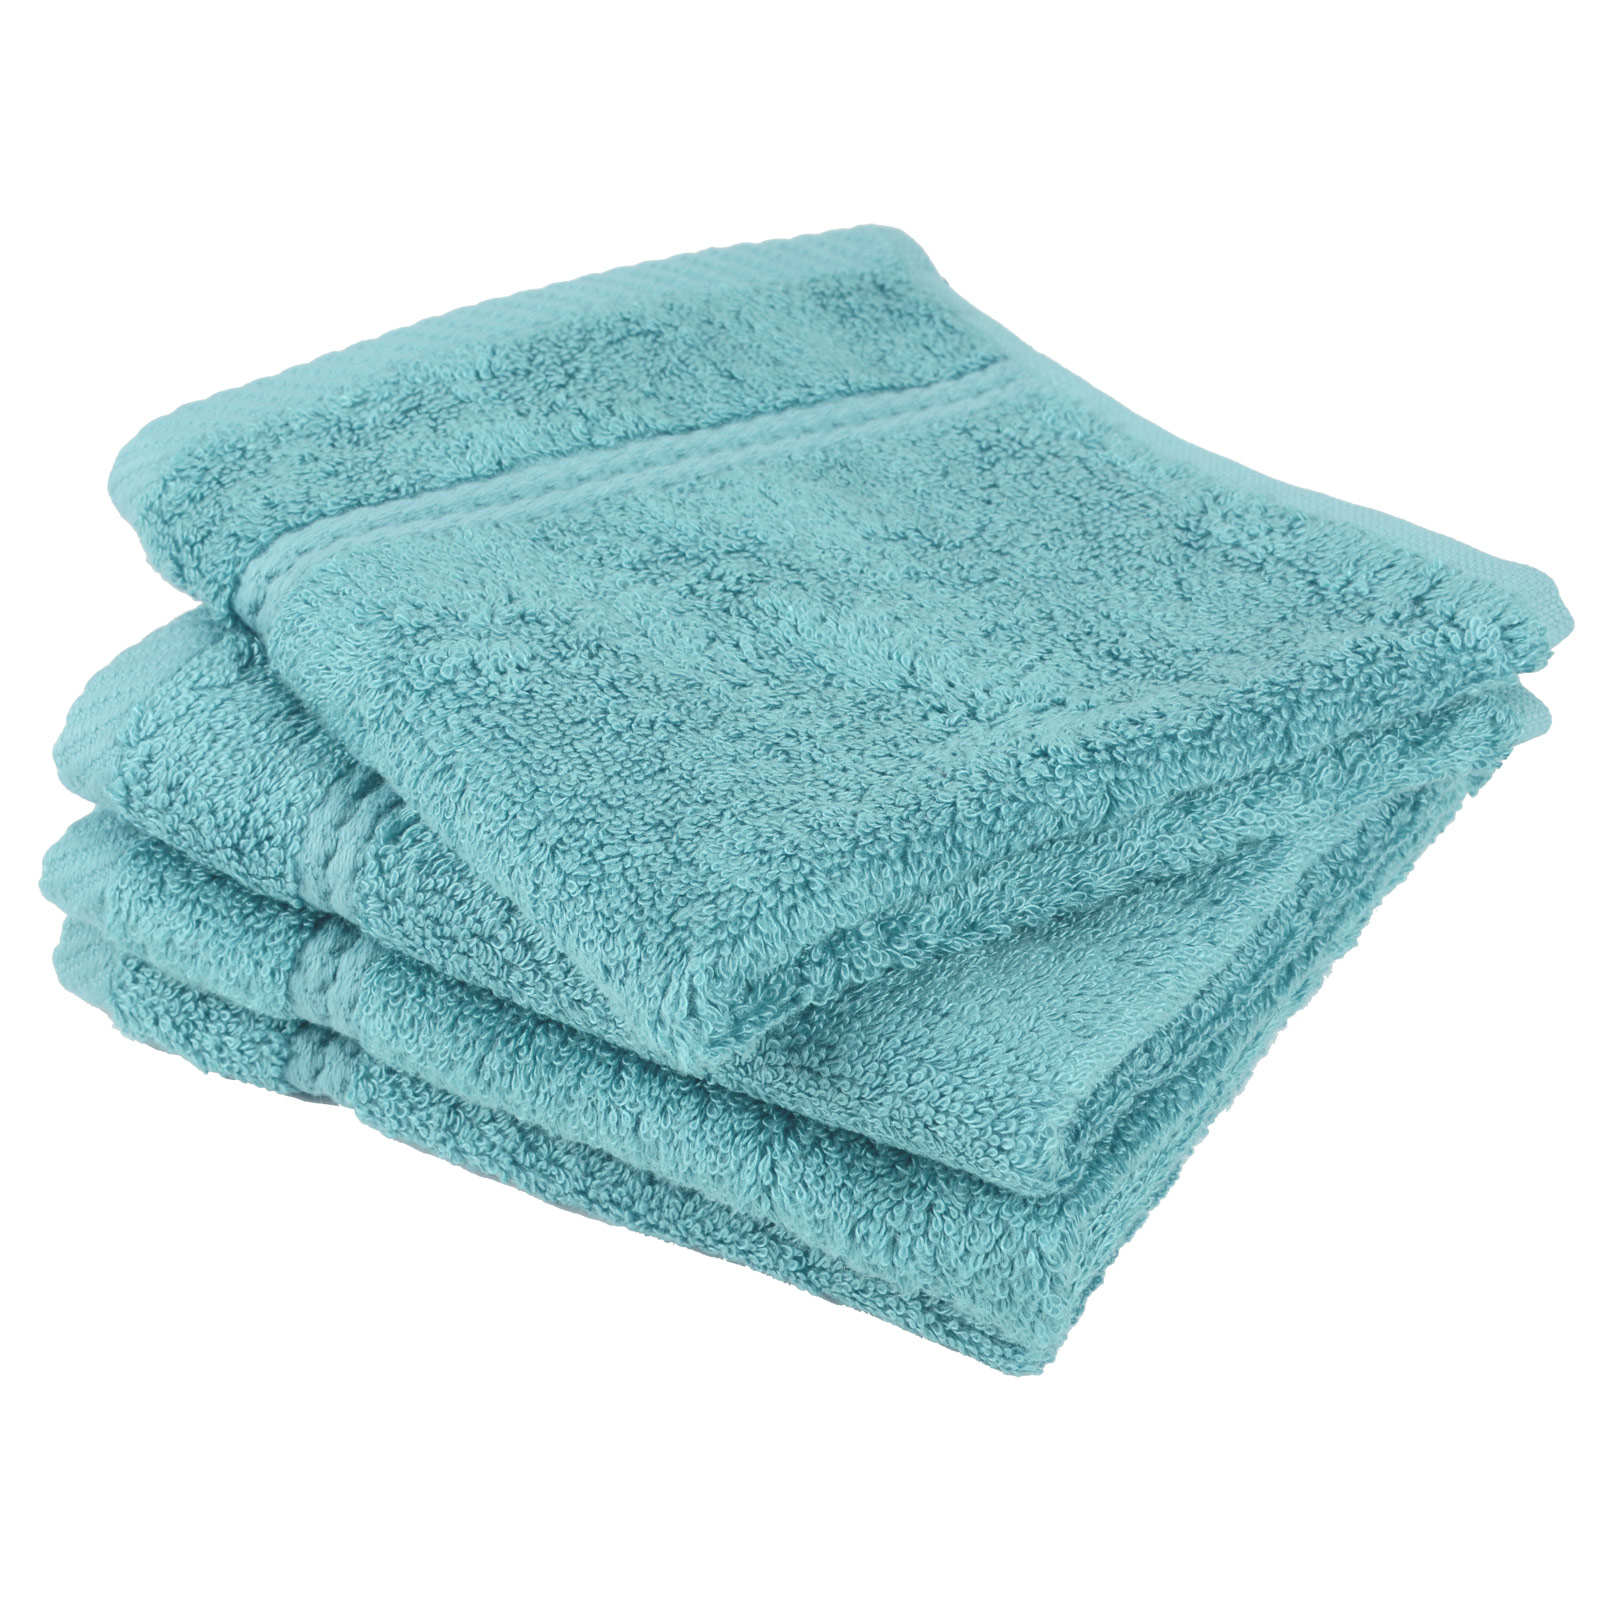 Luxury Bamboo Bathroom Bath Linen Face Cloth Flannel Towel